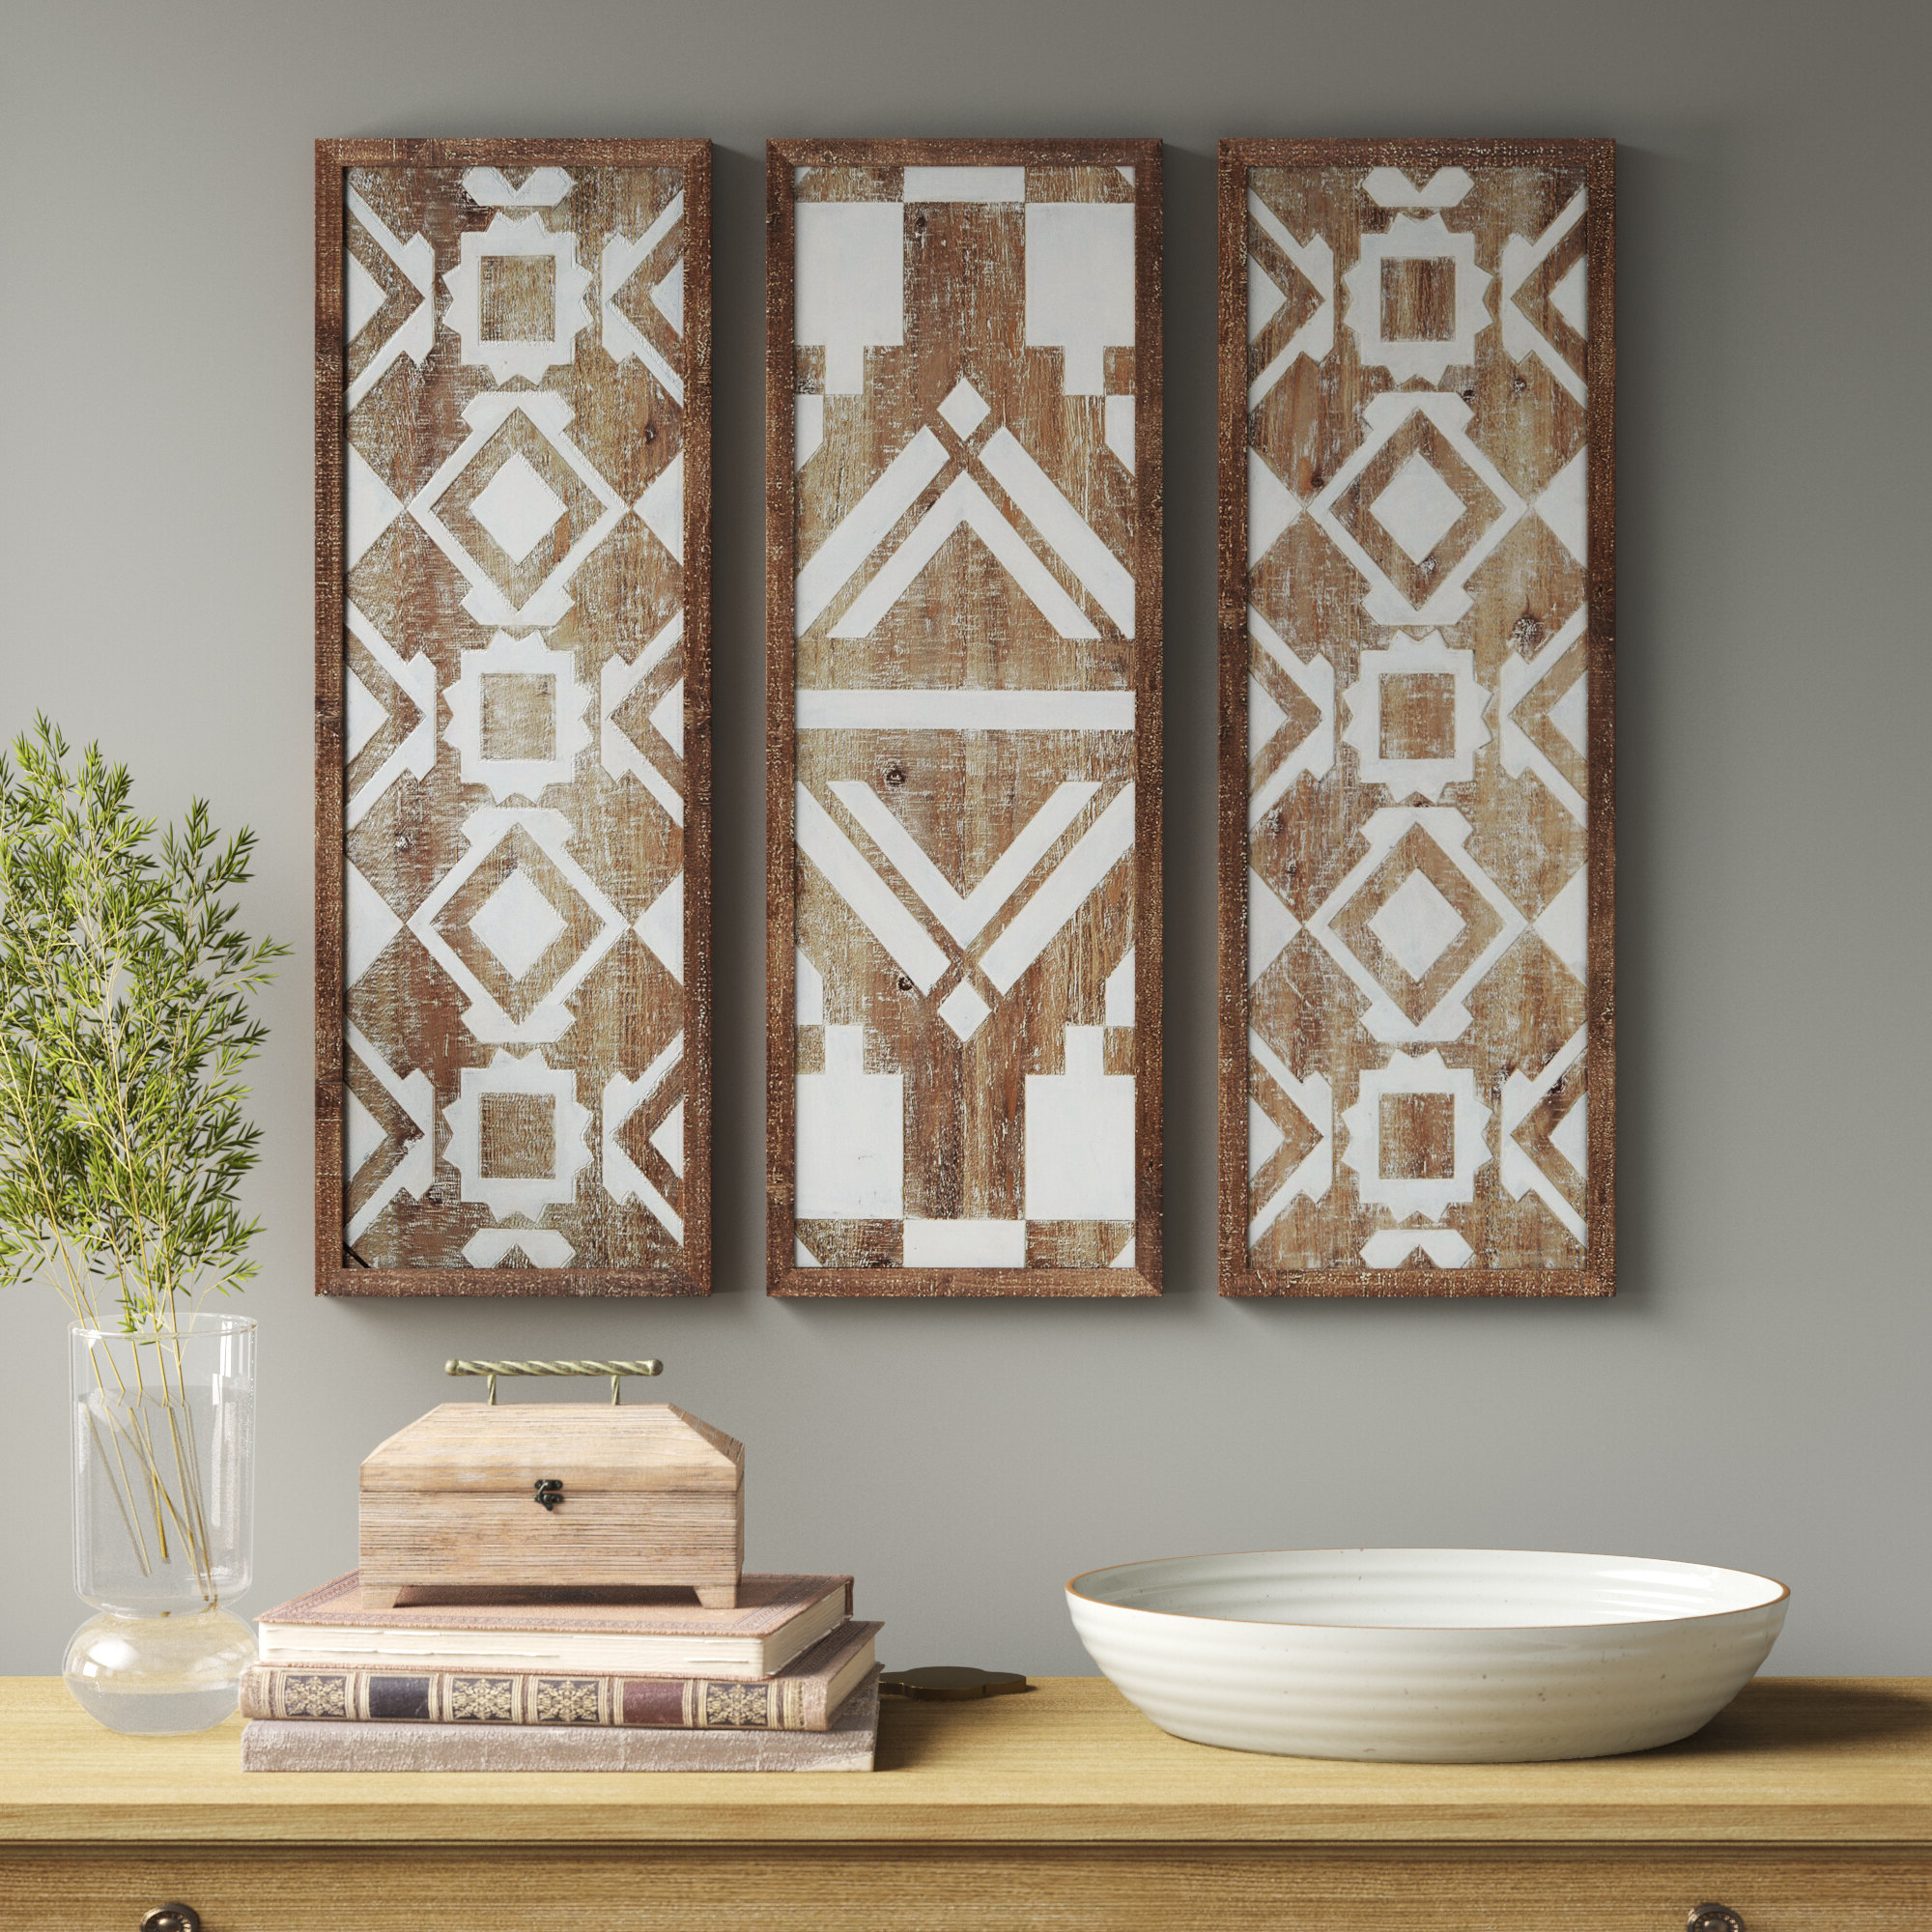 Wayfair Regarding 3 Piece Prisma Wall Décor Set (View 19 of 20)